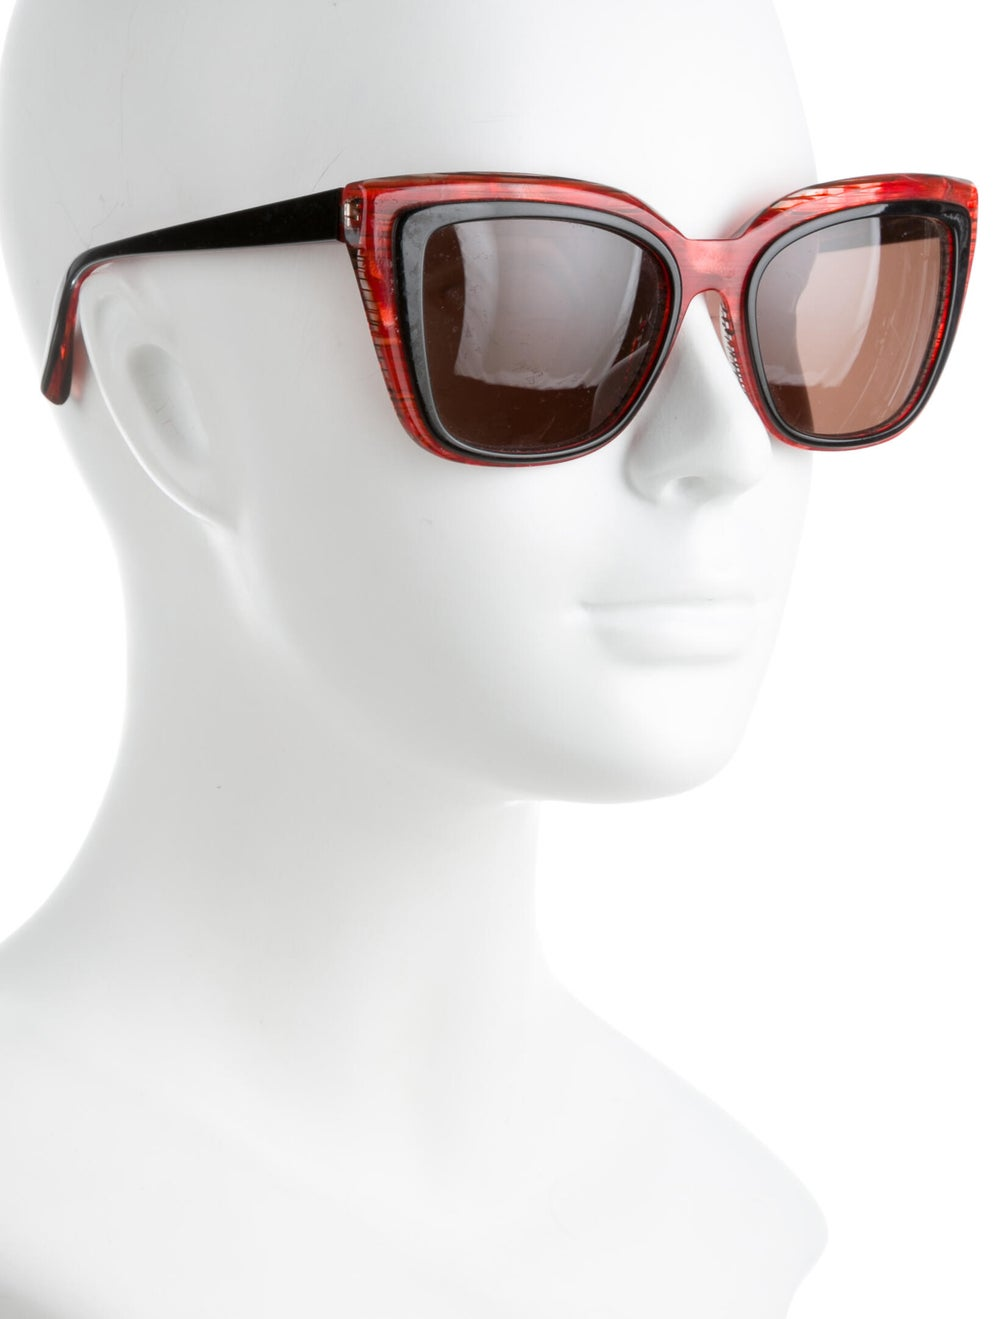 Alain Mikli Square Tinted Sunglasses Red - image 4